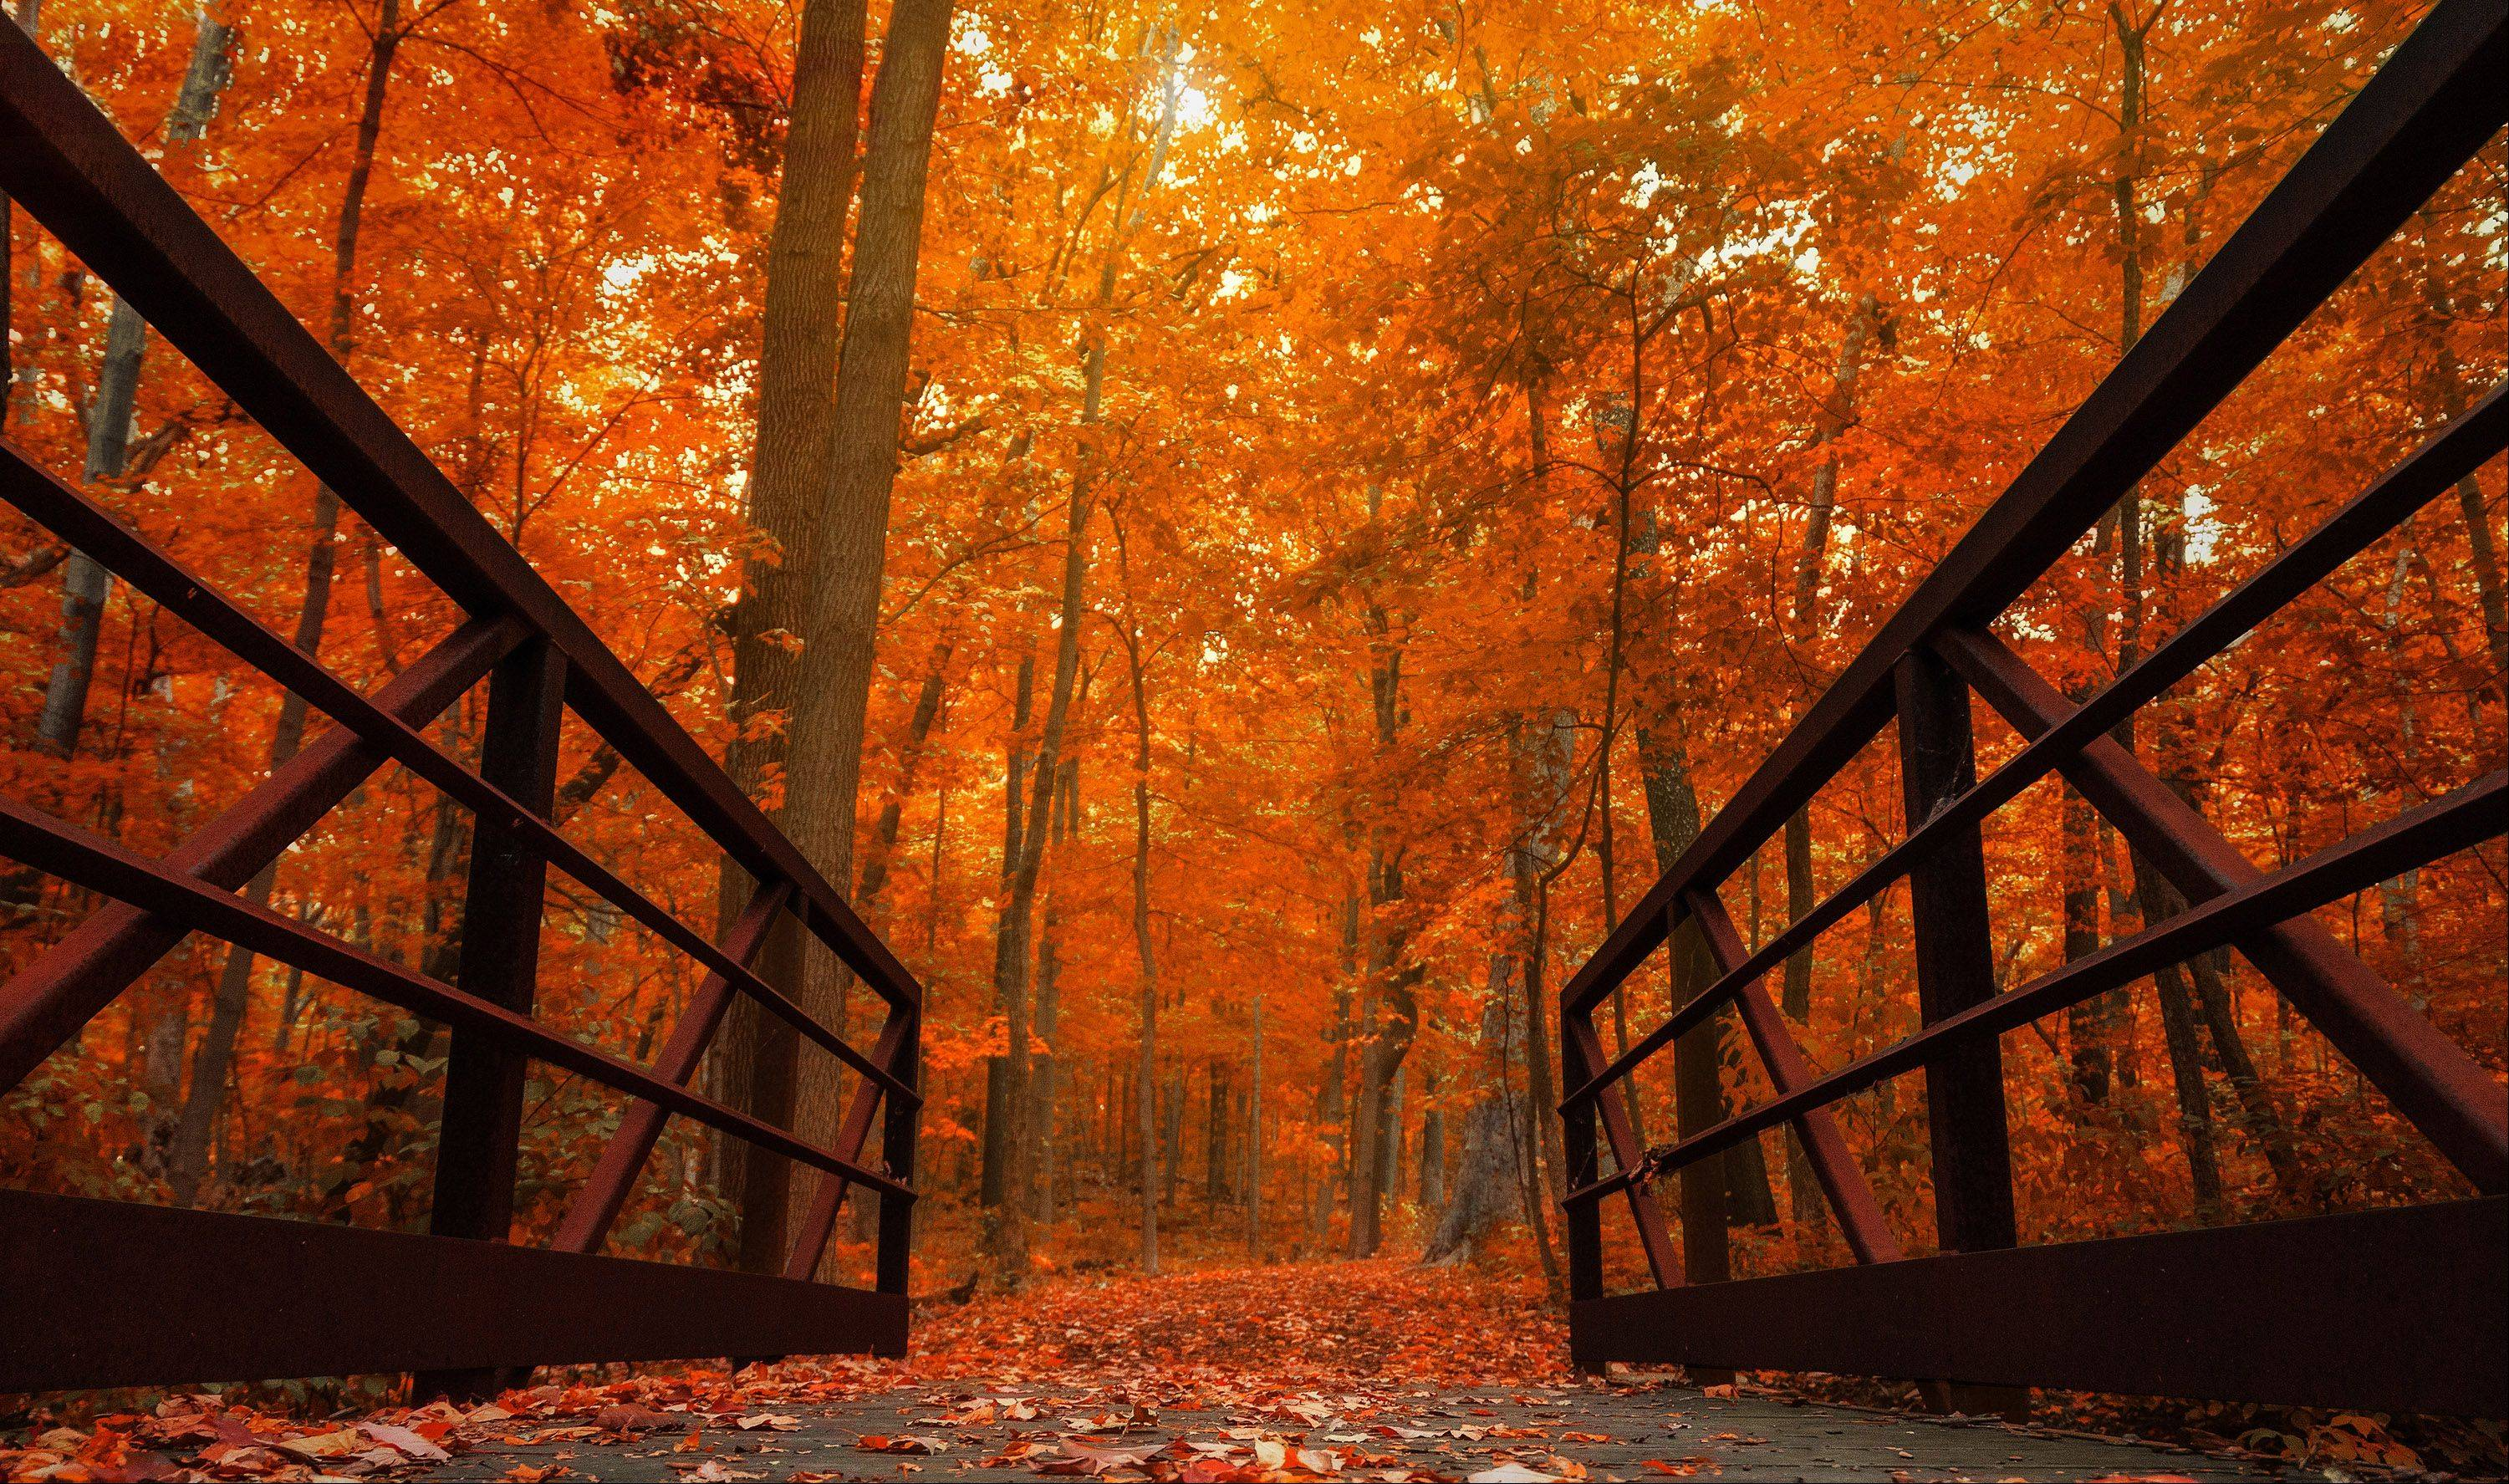 This photo was taken at the Morton Arboretum in Lisle. The bridge and fall colors came together to create a surreal scene.